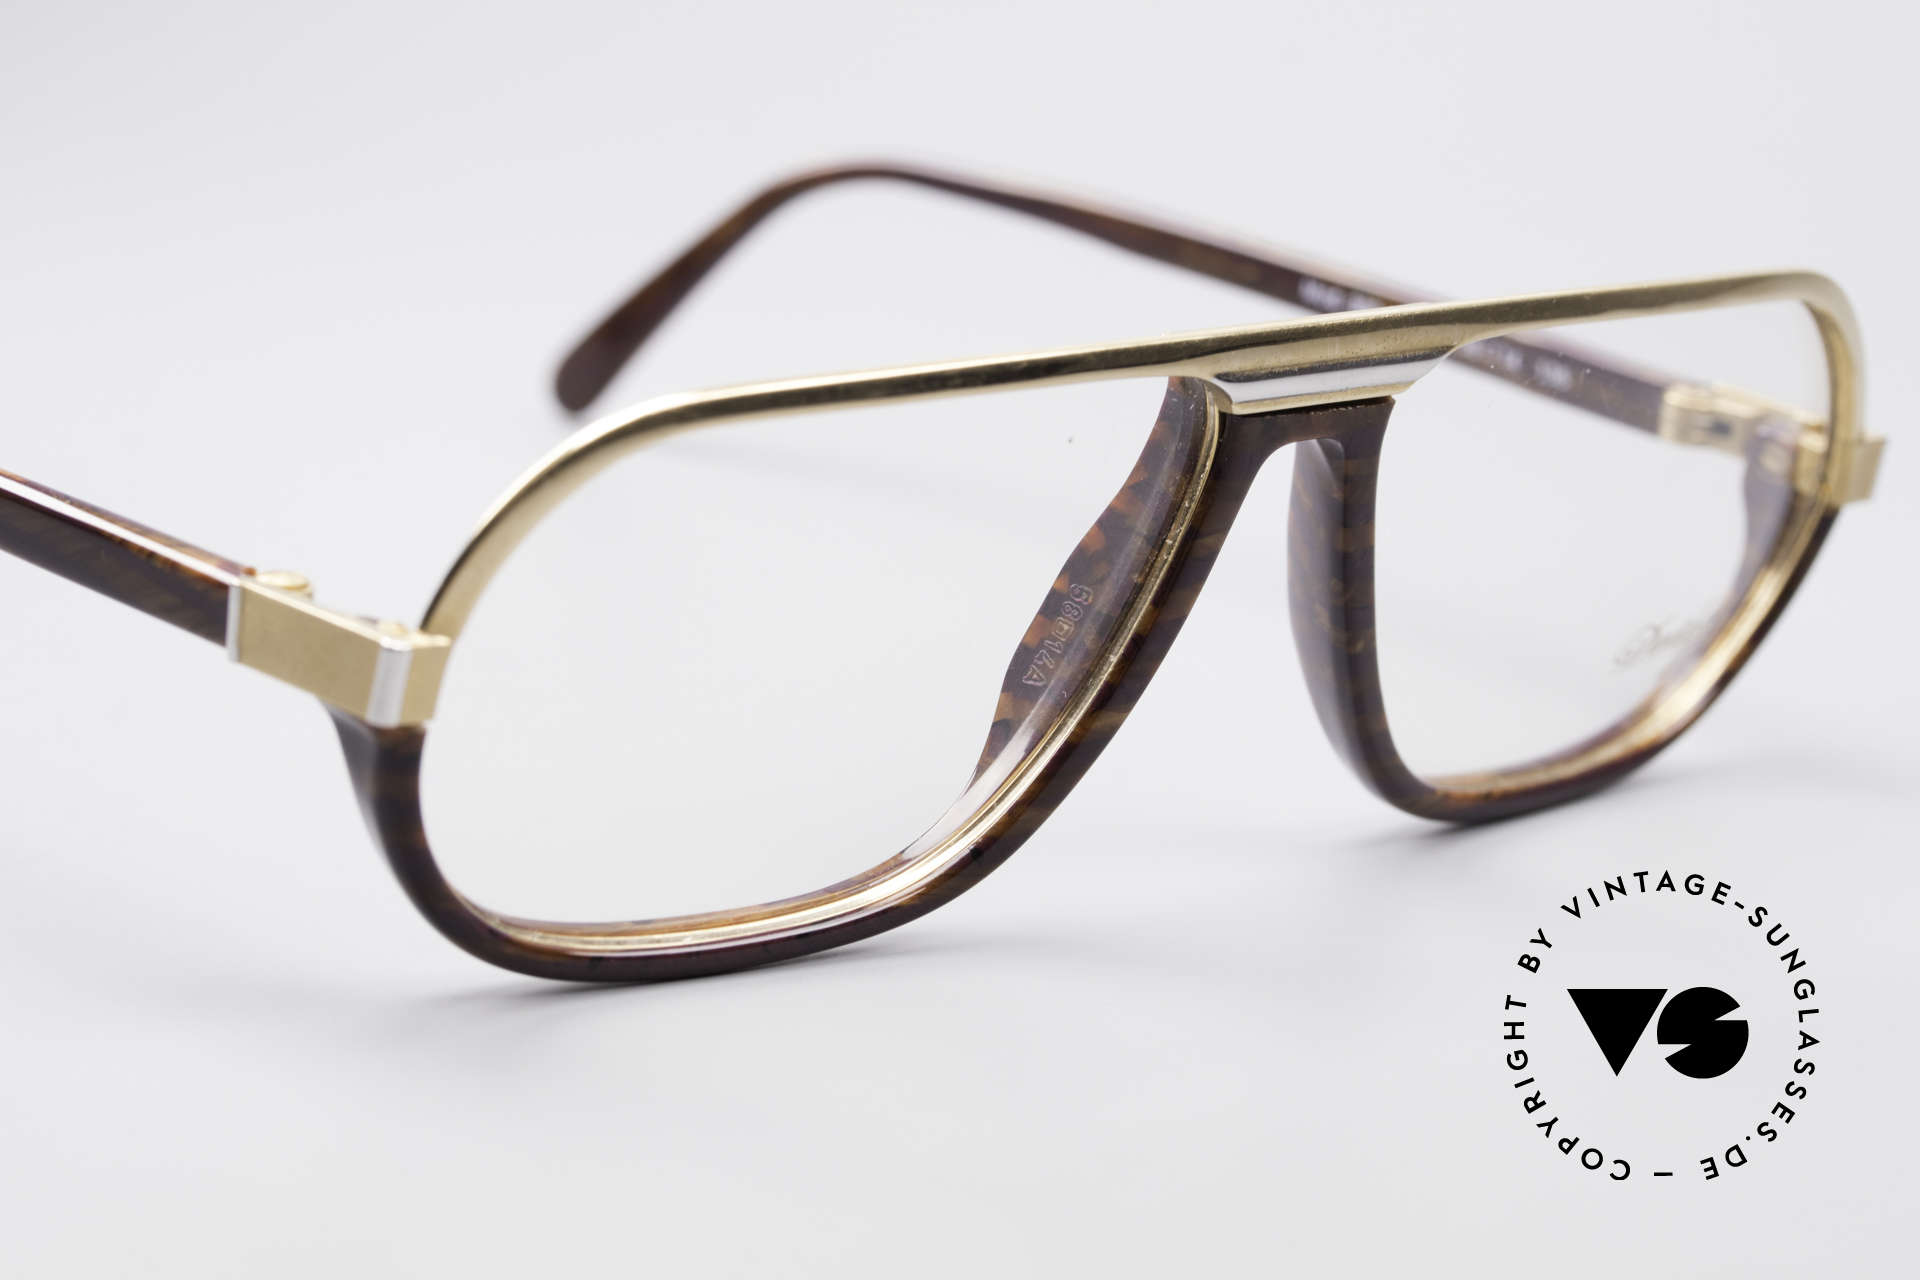 Davidoff 300 Small Men's Vintage Glasses, new old stock (like all our VINTAGE Davidoff eyewear), Made for Men